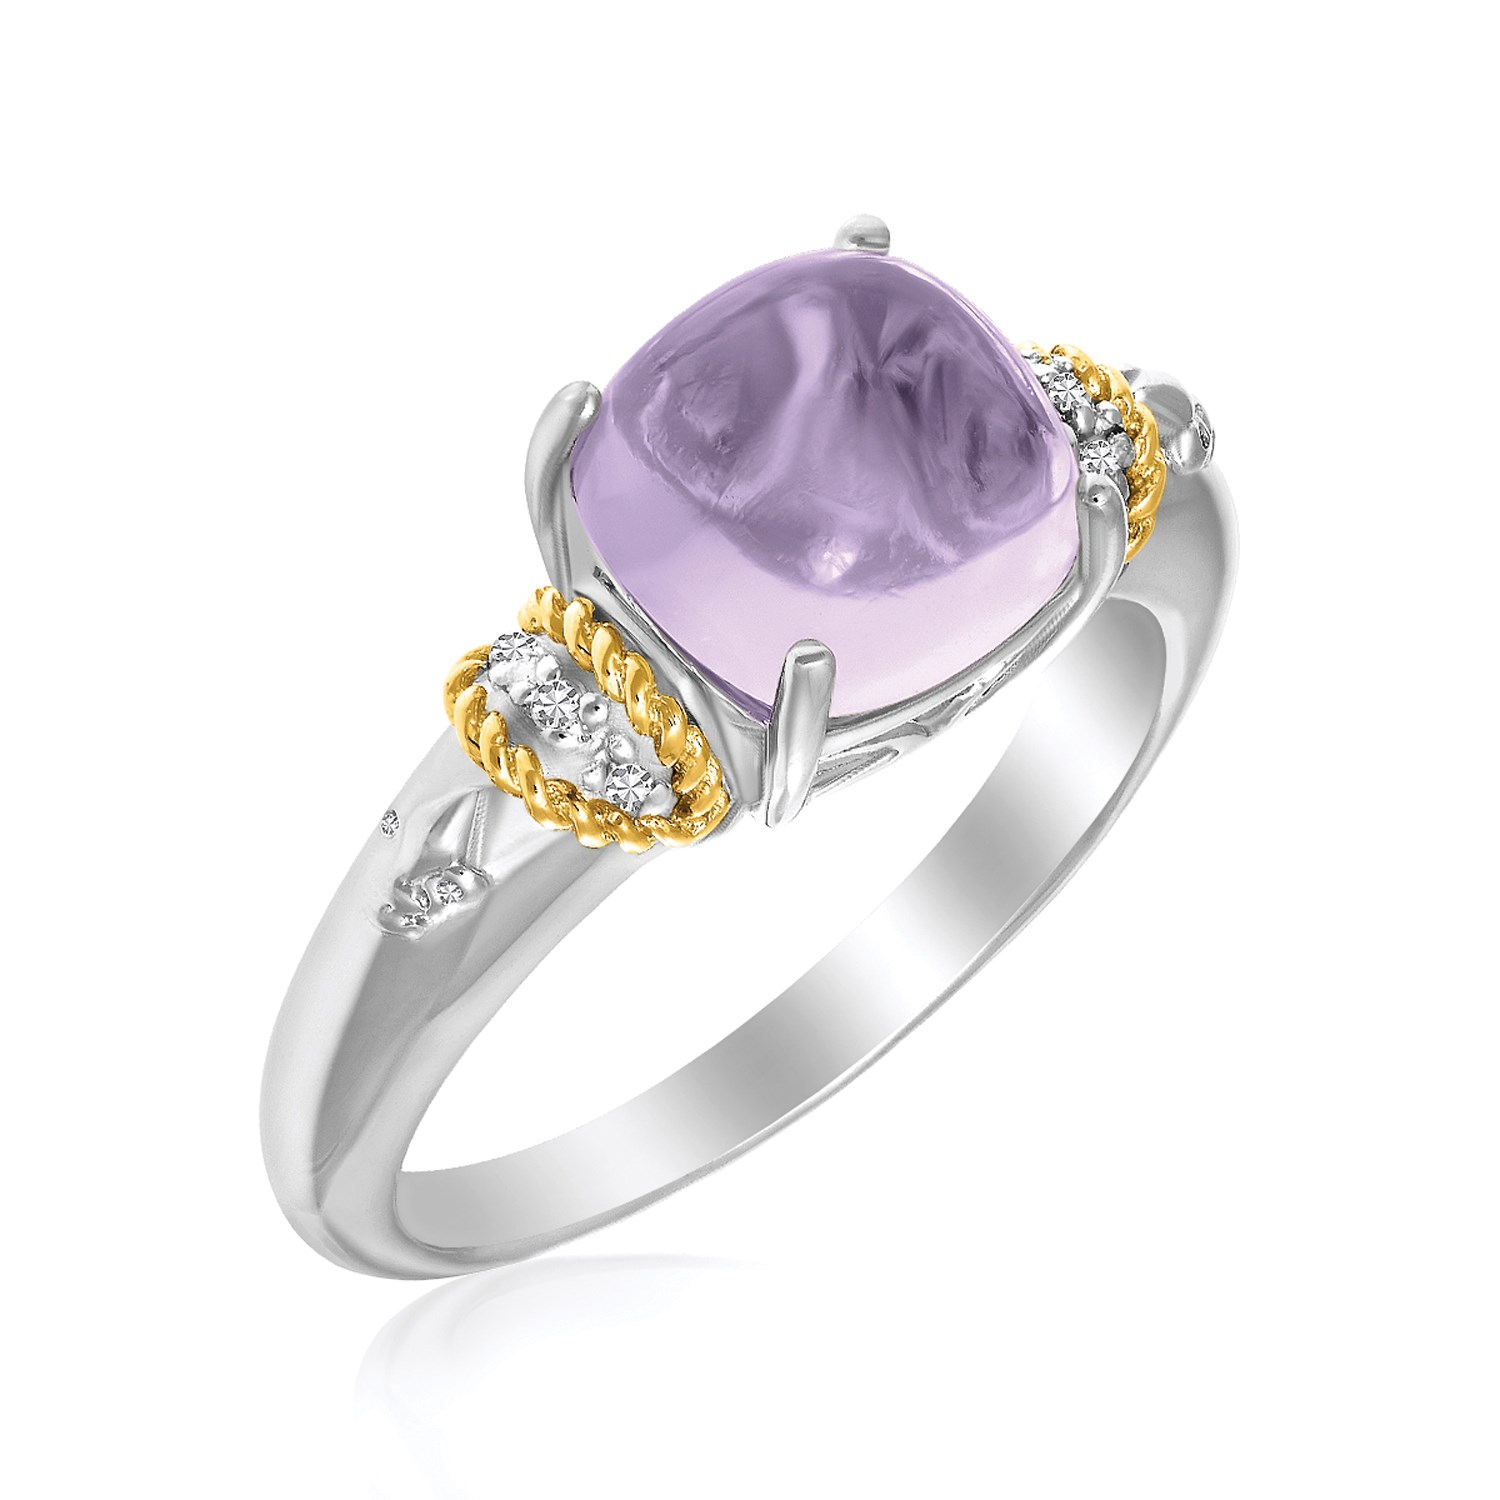 18K Yellow Gold & Sterling Silver Prong Set Square Amethyst and Diamond Ring Size 6 by Mia Diamonds